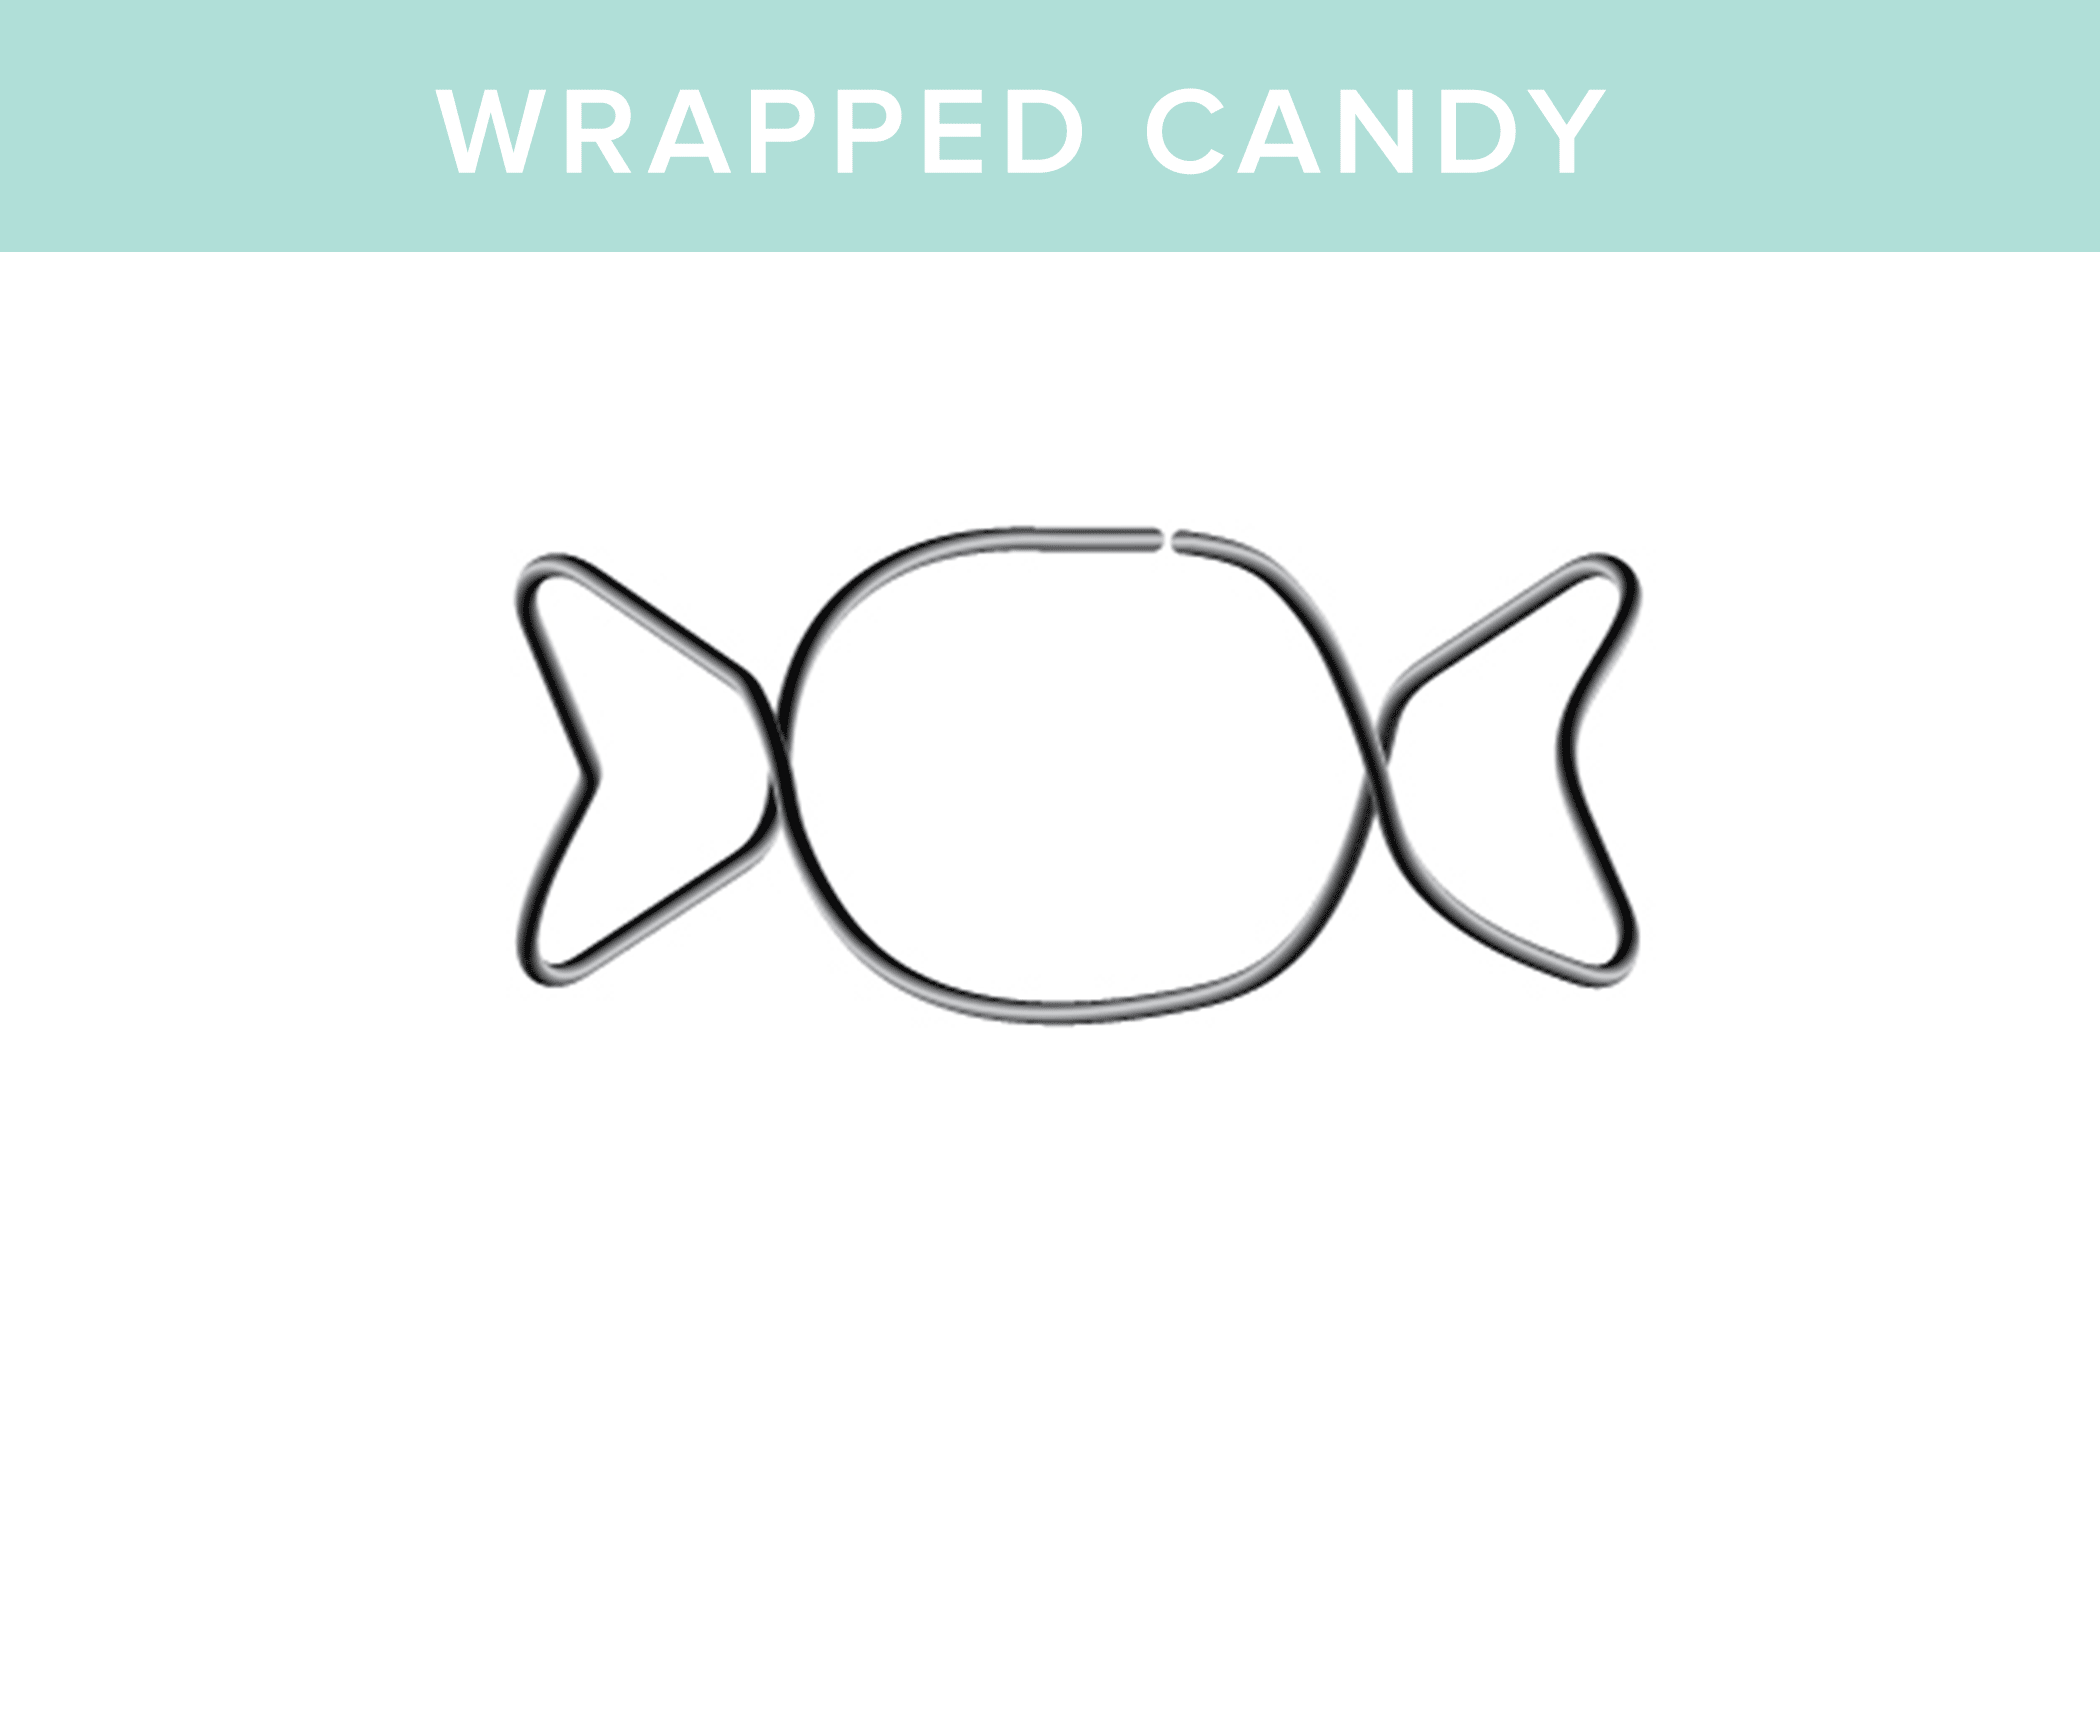 Happy-Jig-Website-TemplateWRAPPED-CANDY